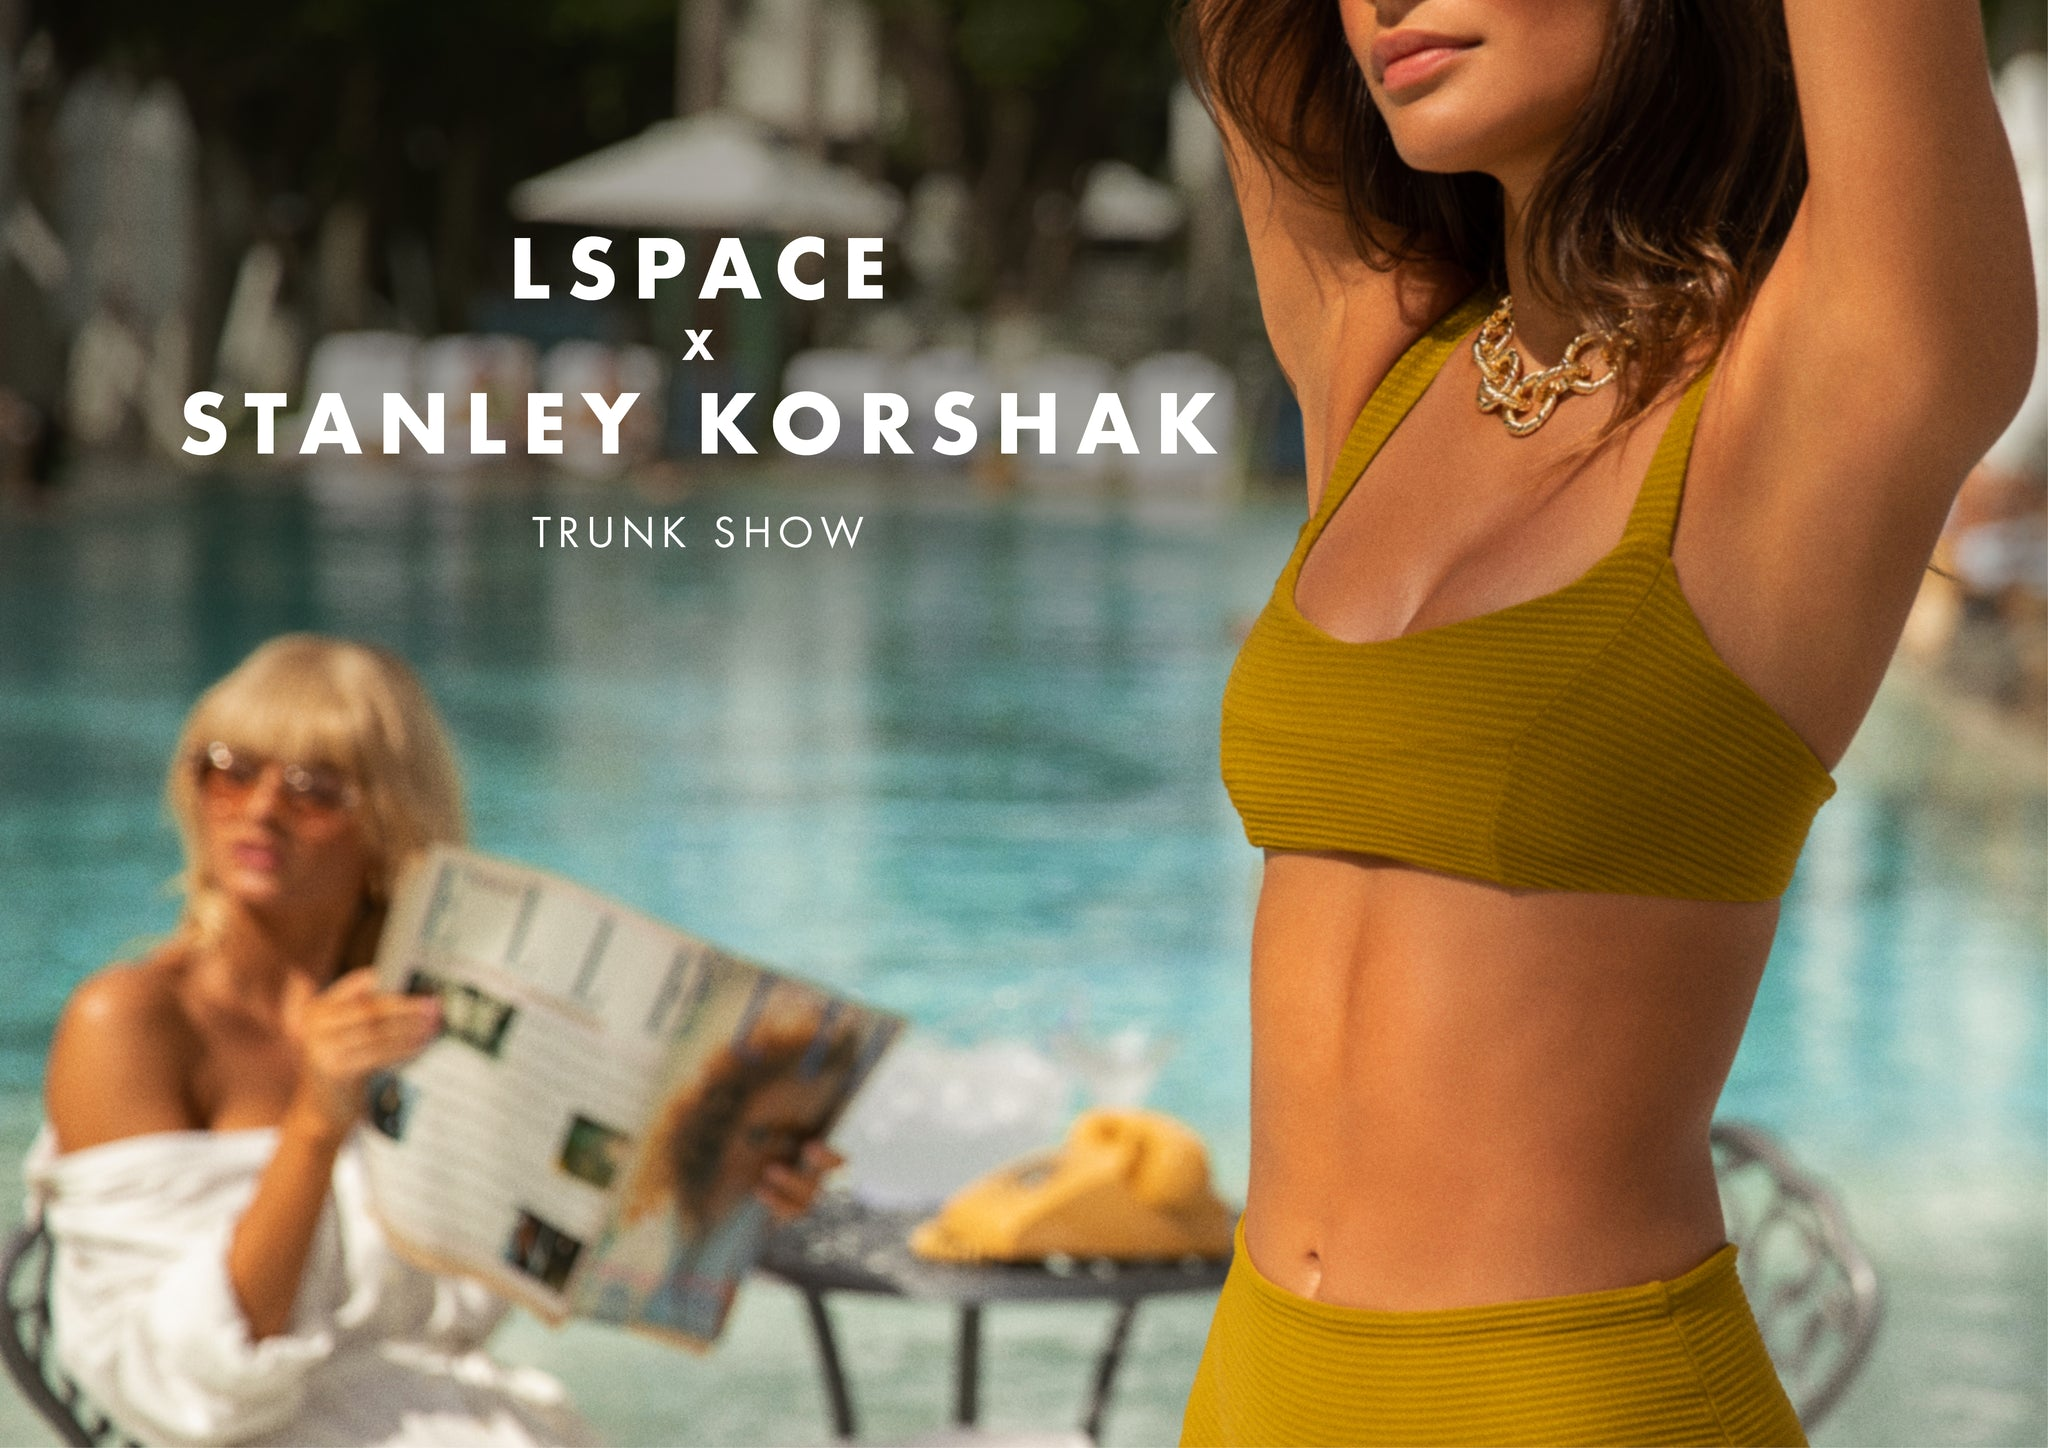 L*SPACE x Stanley Korshak Trunk Show